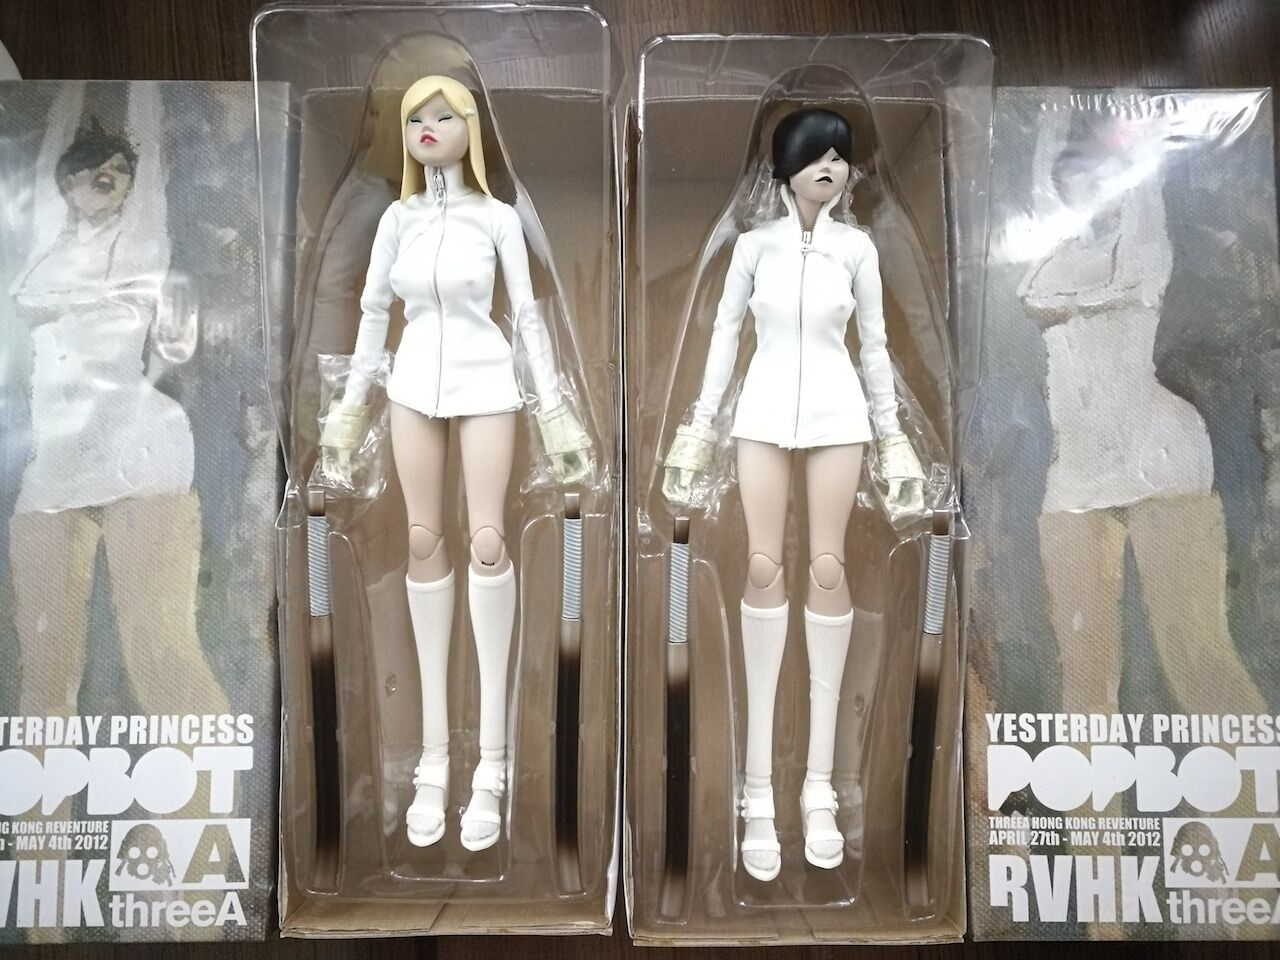 1 6 3A - TQ Yesterday Princess Revneture HK RVHK Ashley Wood ThreeA popbot TK